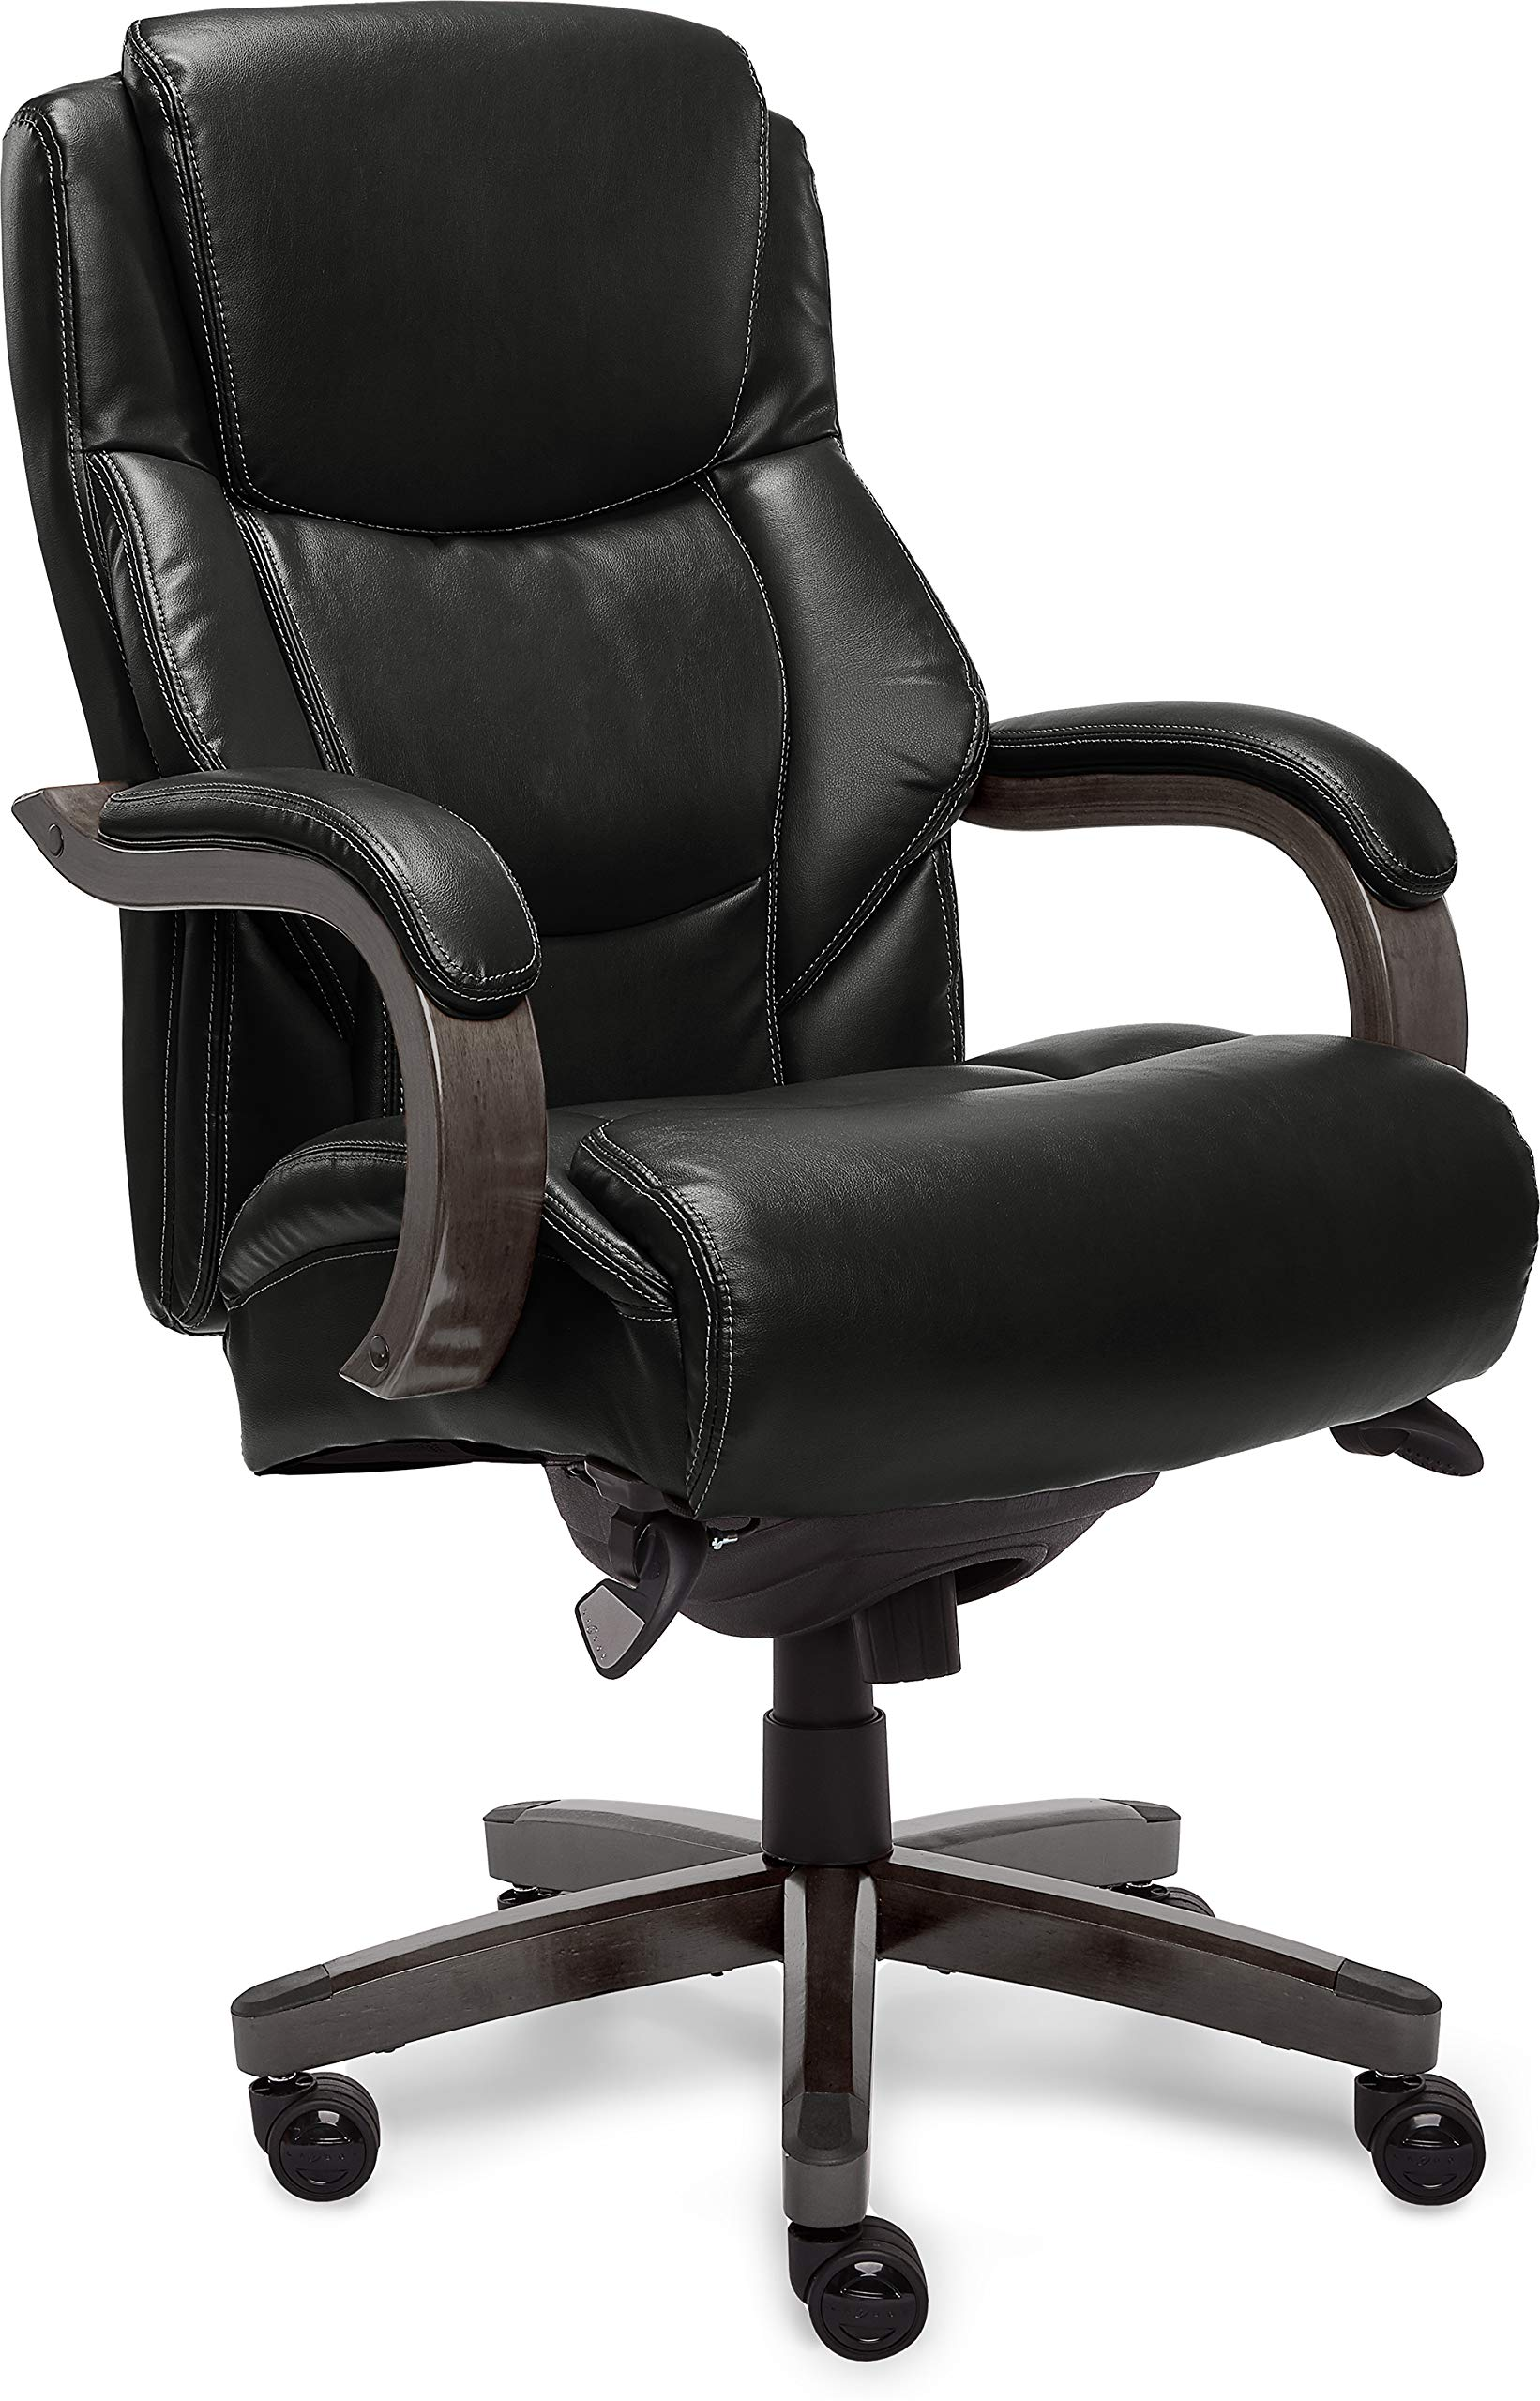 LaZBoy CHR10045B Delano Executive Office Chair, Big And Tall, Black And Gray by La-Z-Boy